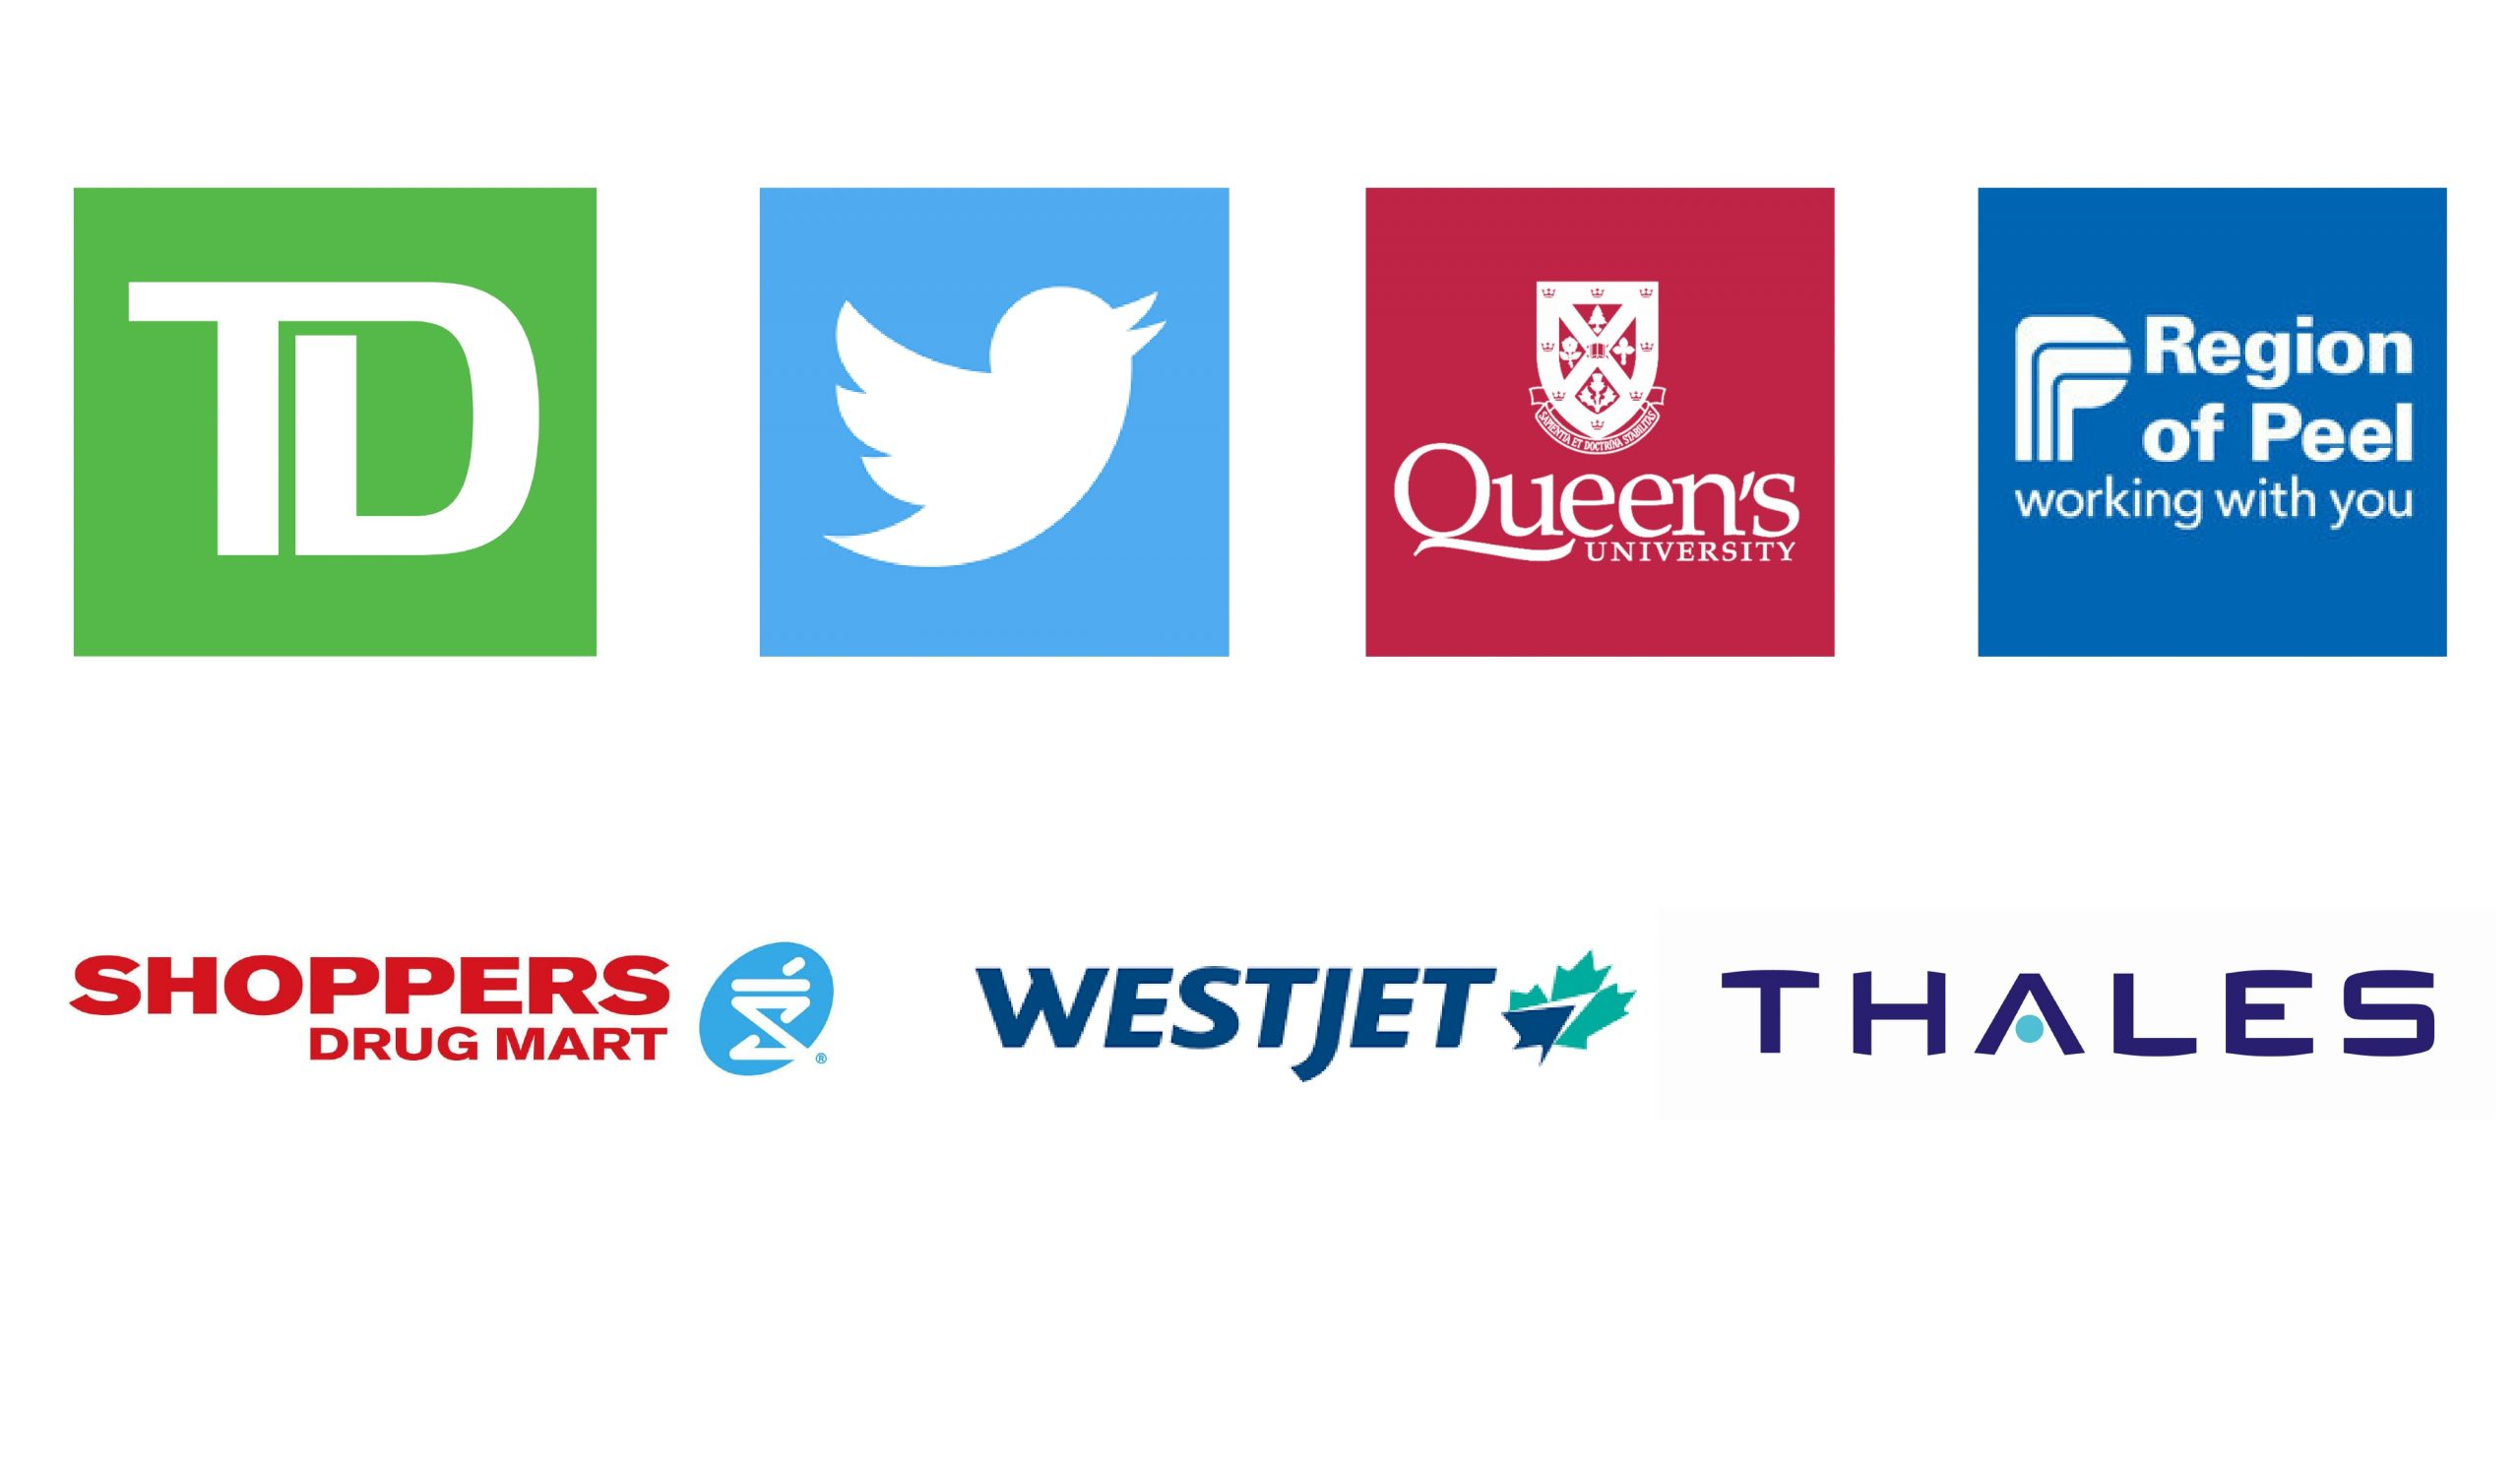 Logos include TD, Twitter, Queen's University, Region of Peel, Shoppers Drug Mart, WestJet, and Thales.